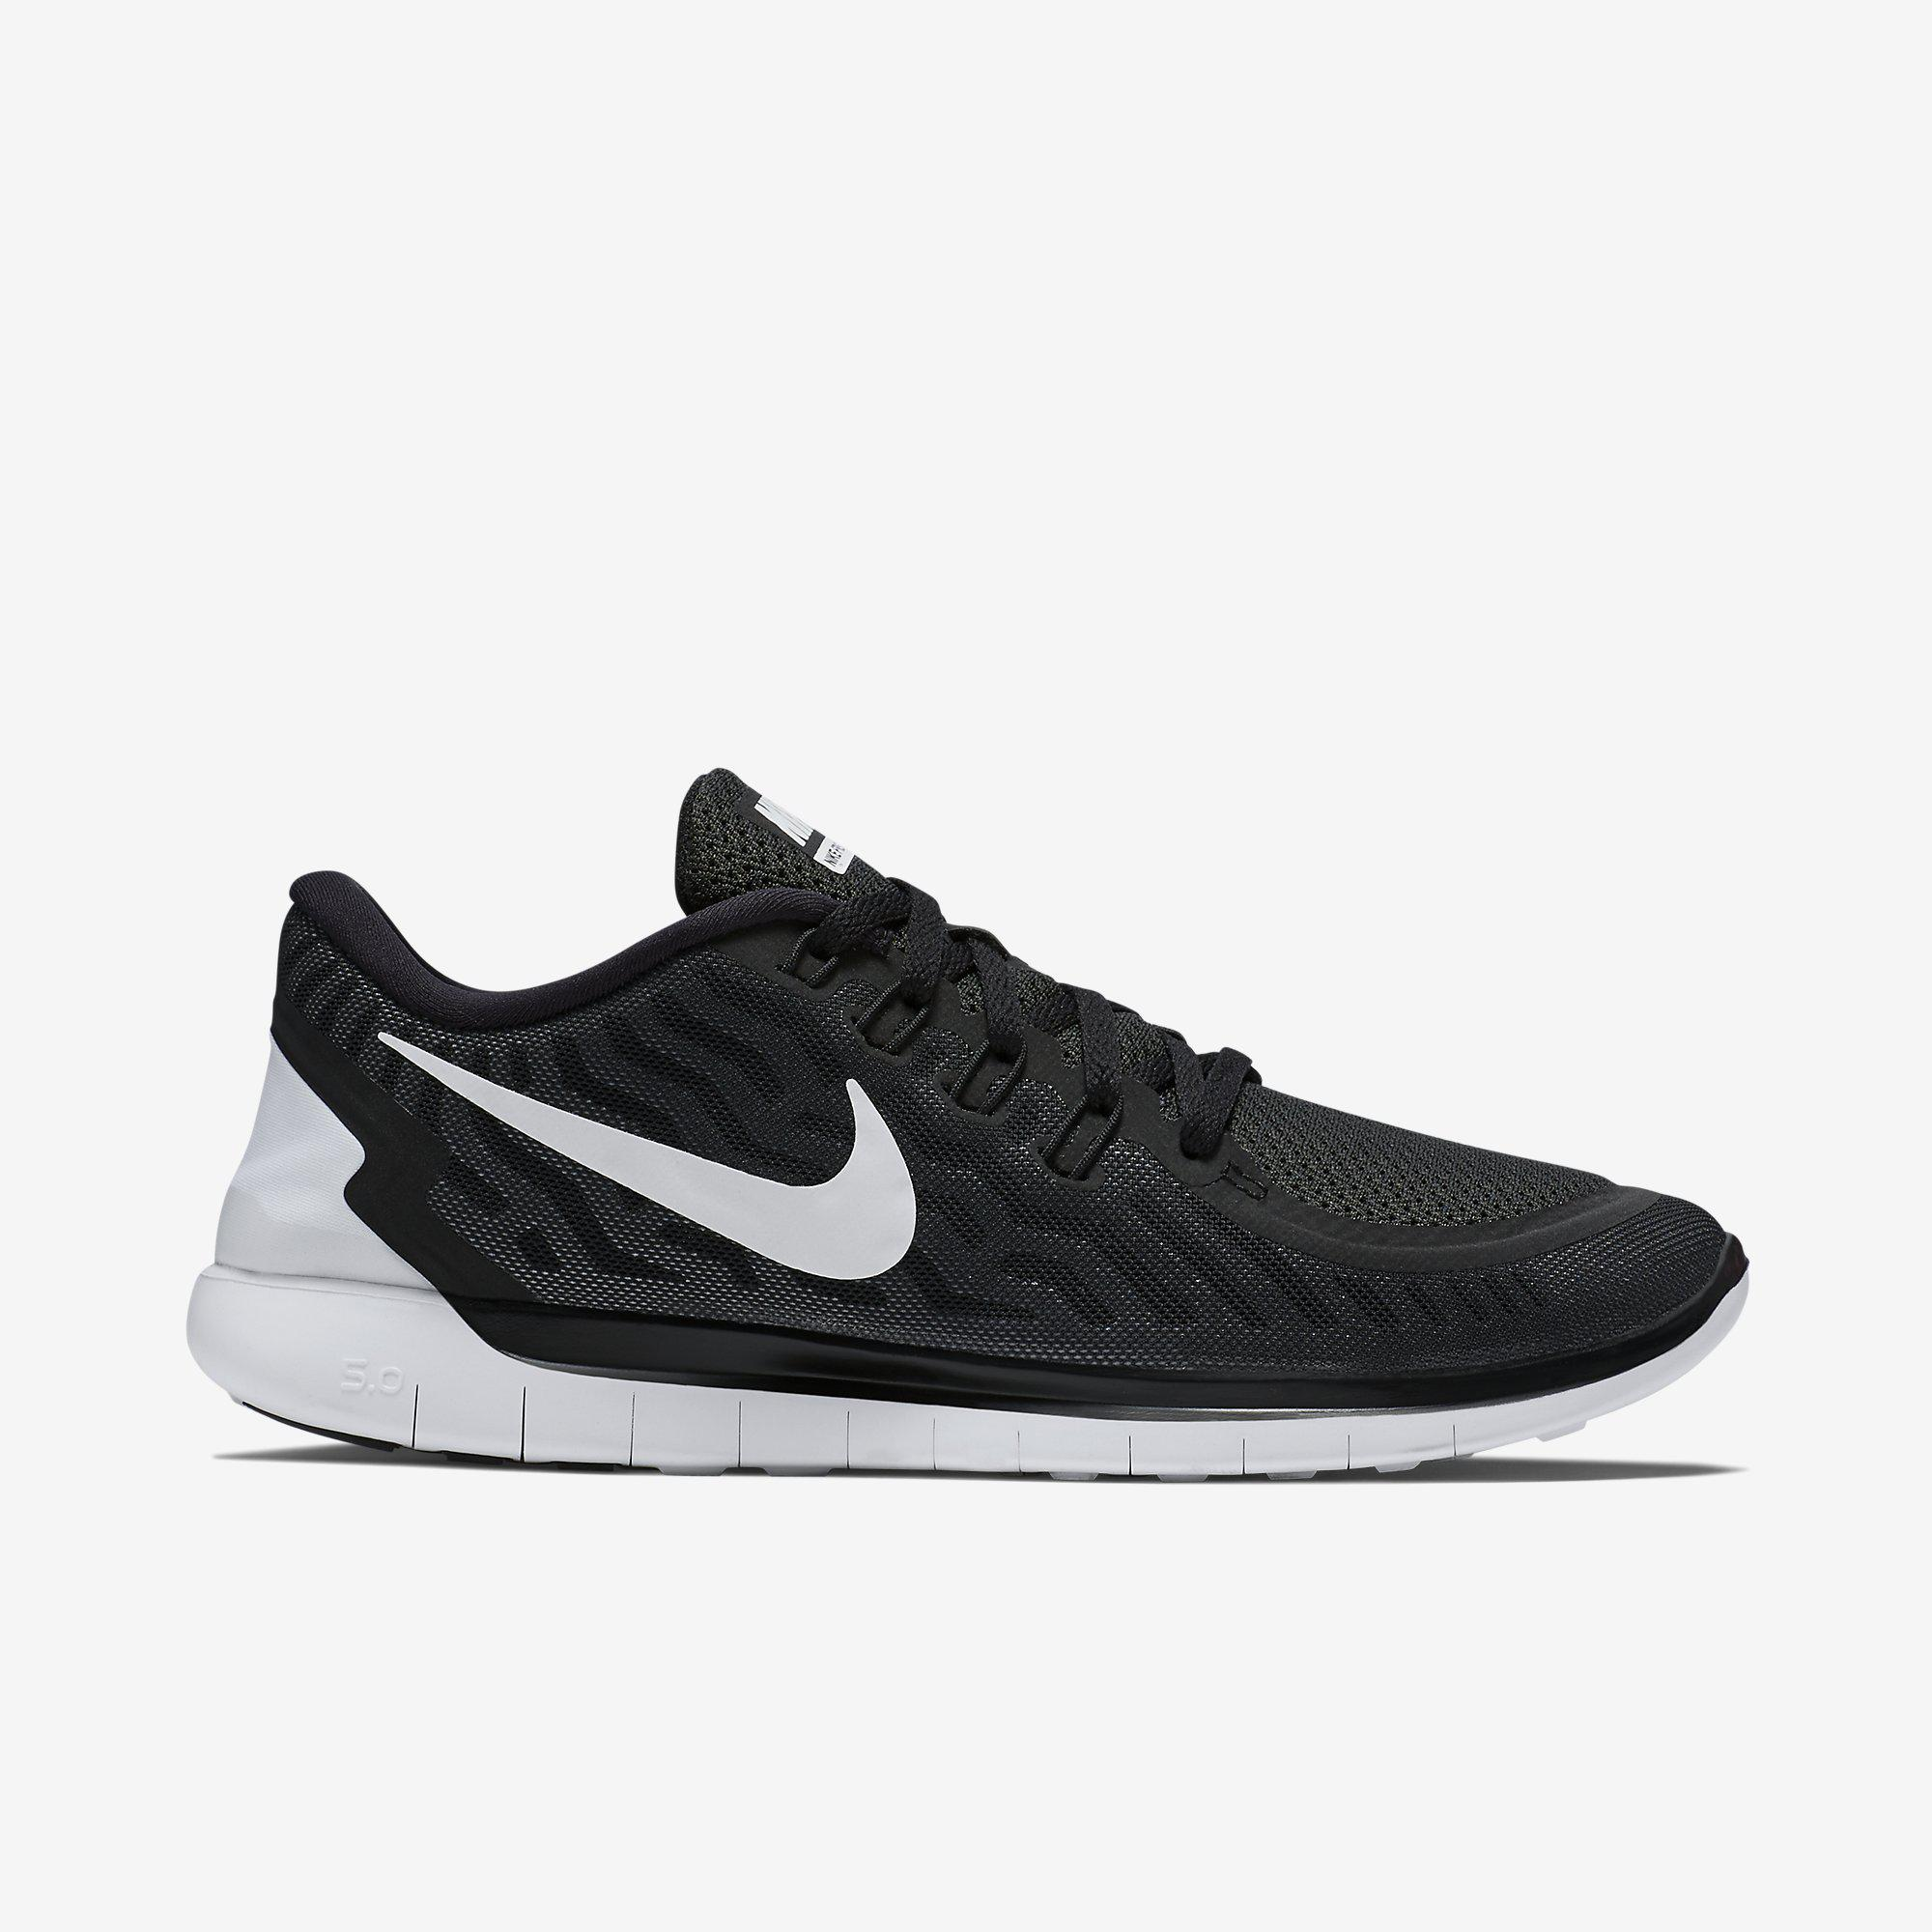 nike mens free 5 0 running shoes black white. Black Bedroom Furniture Sets. Home Design Ideas